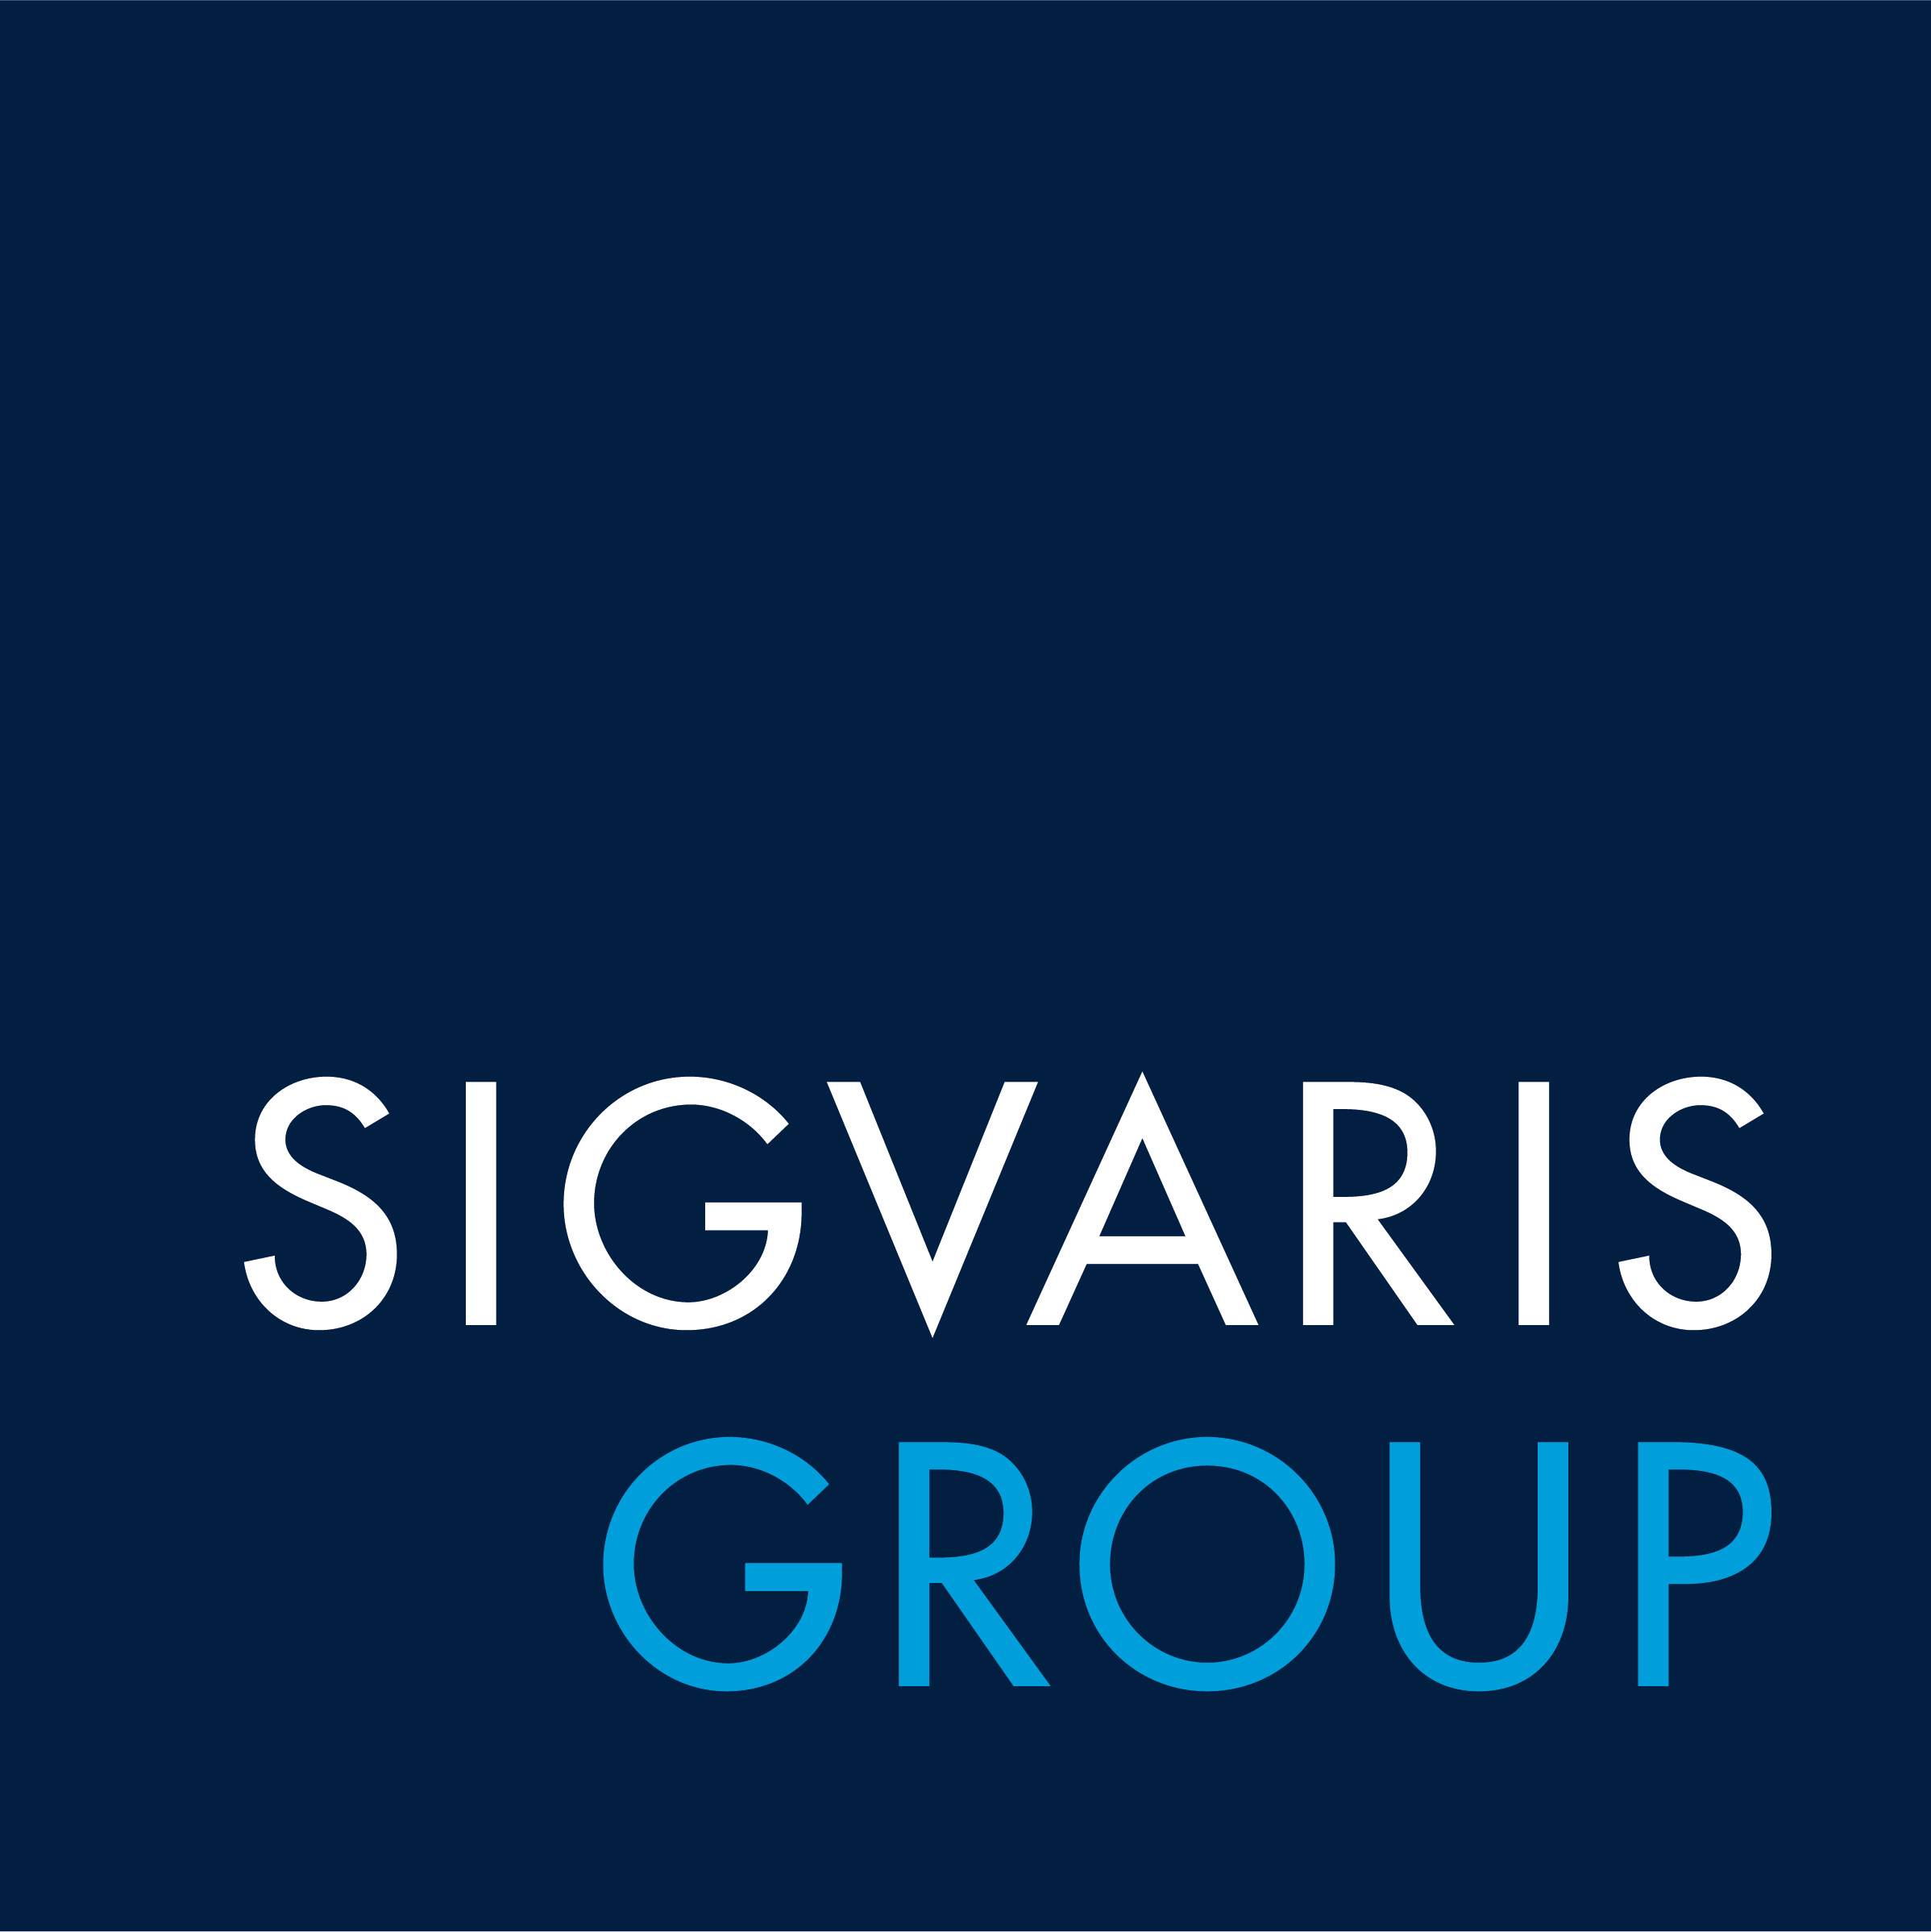 Live your life. Be yourself. - SIGVARIS Group is a global leader in providing medical solutions to help maintain an optimal level of wellness. SIGVARIS offers a complete portfolio of ready-to-wear, fashion-forward, graduated compression socks and hosiery for prevention and well-being. SIGVARIS also manufactures wraps, garments and bandaging systems for the management and treatment of medically complex edema including chronic venous disease, wounds and upper and lower body lymphedema. Visit sigvaris.com to learn more.